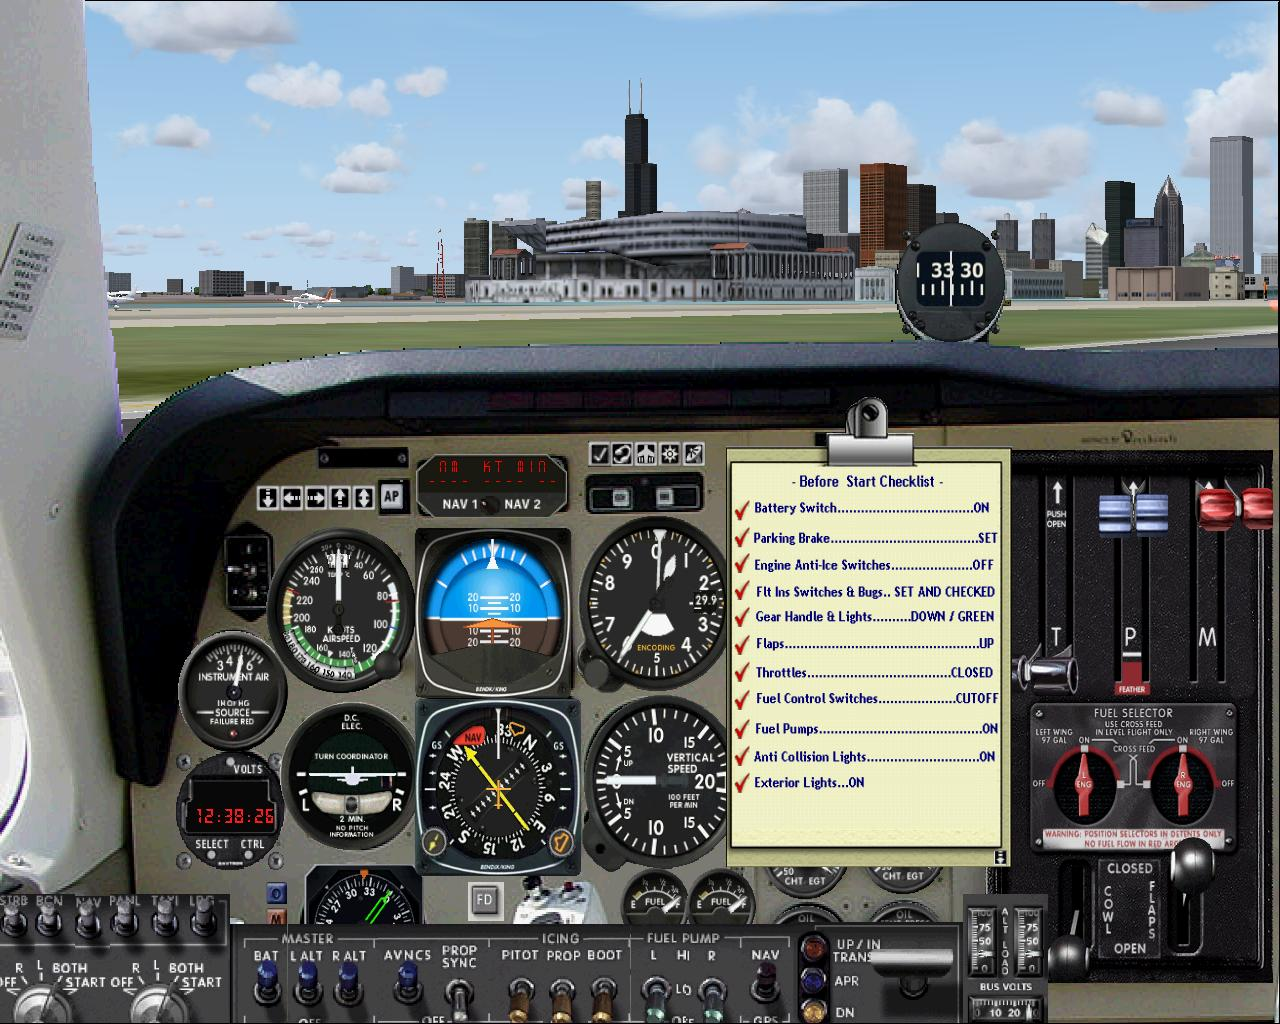 PERFECT FLIGHT - FLY THE BEECH BARON 58